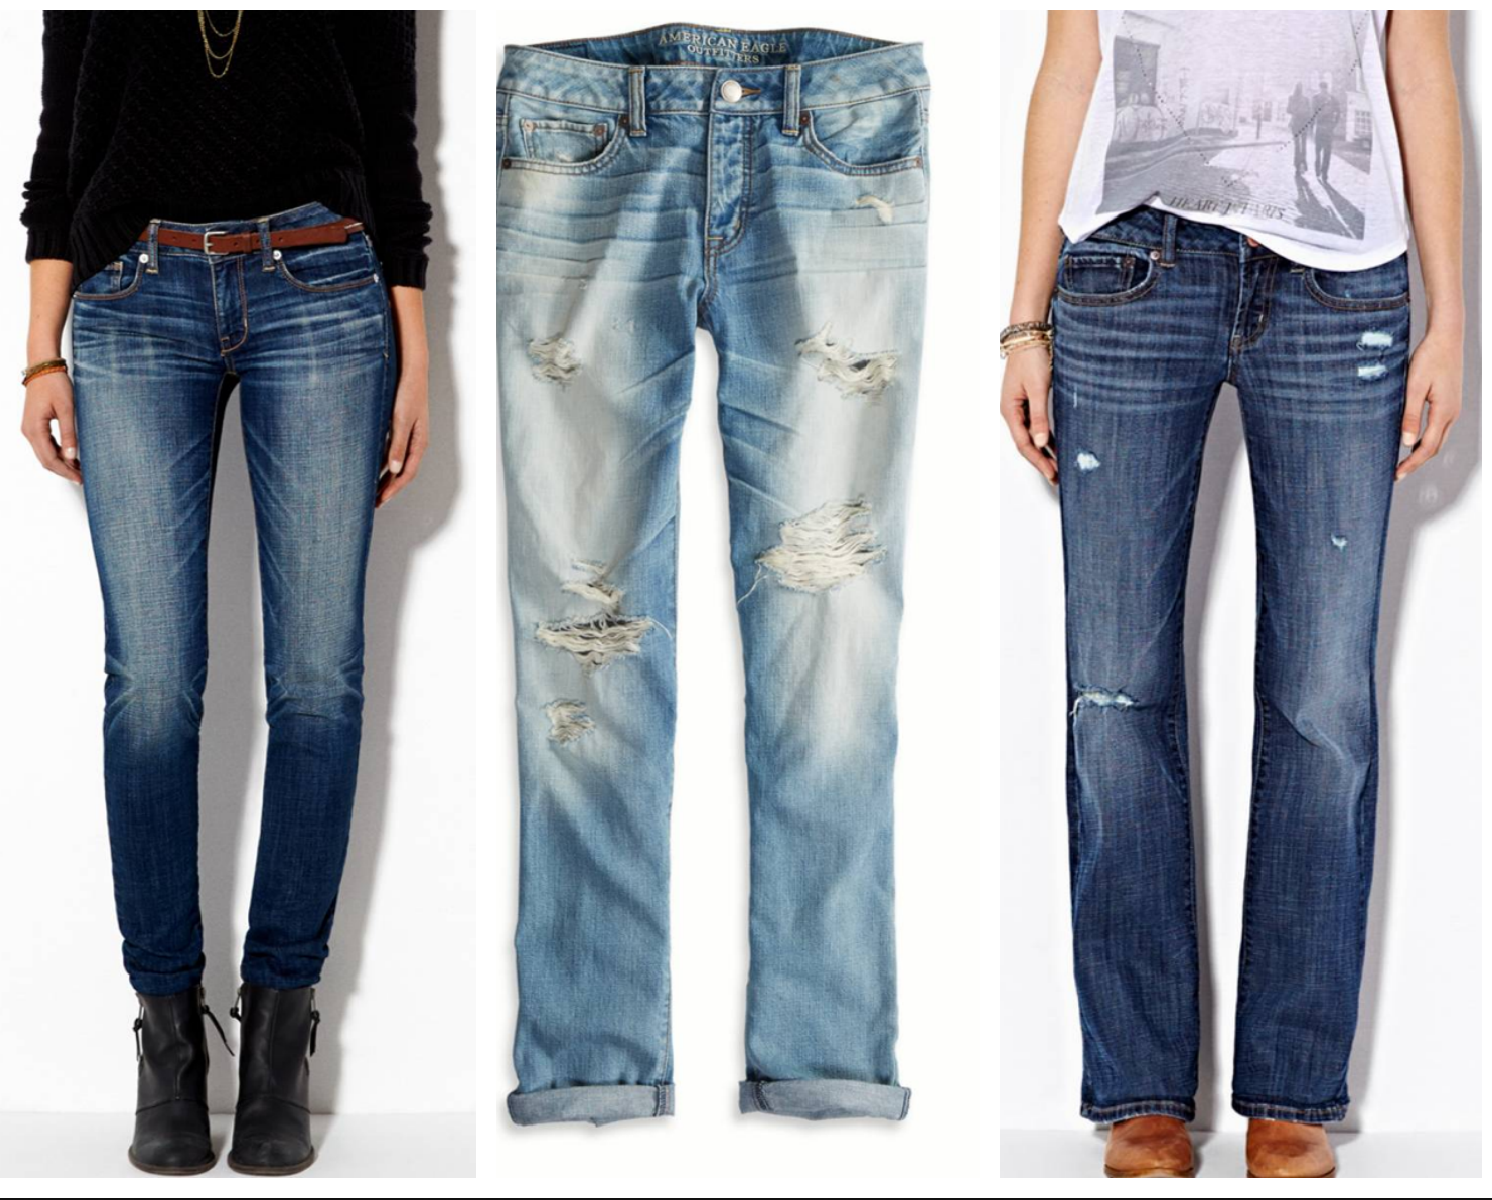 Jean Guide Best Jeans For Moms Fit Style And Price Stylish Life For Moms